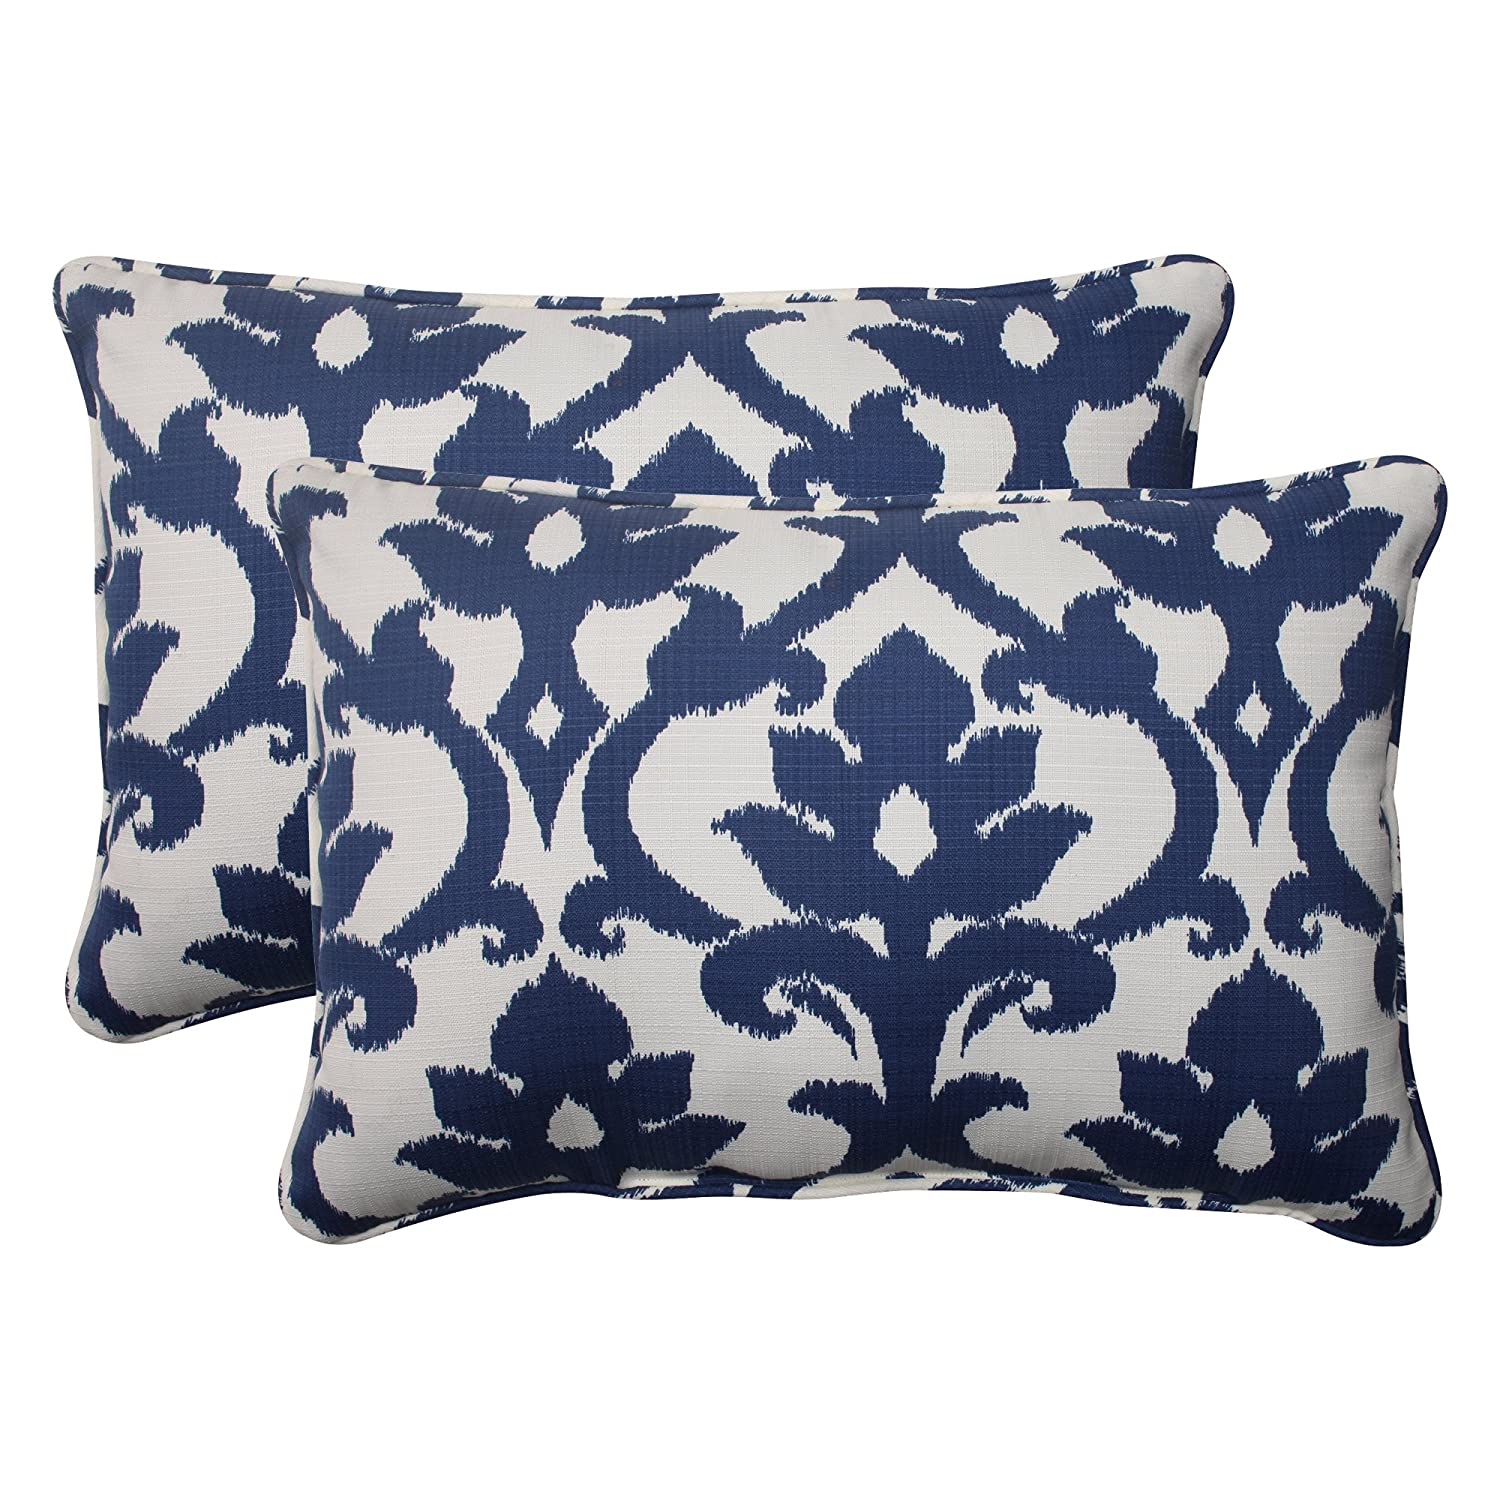 amazon stripes com cover decorative pillow dp navy printed home pillows kitchen throw